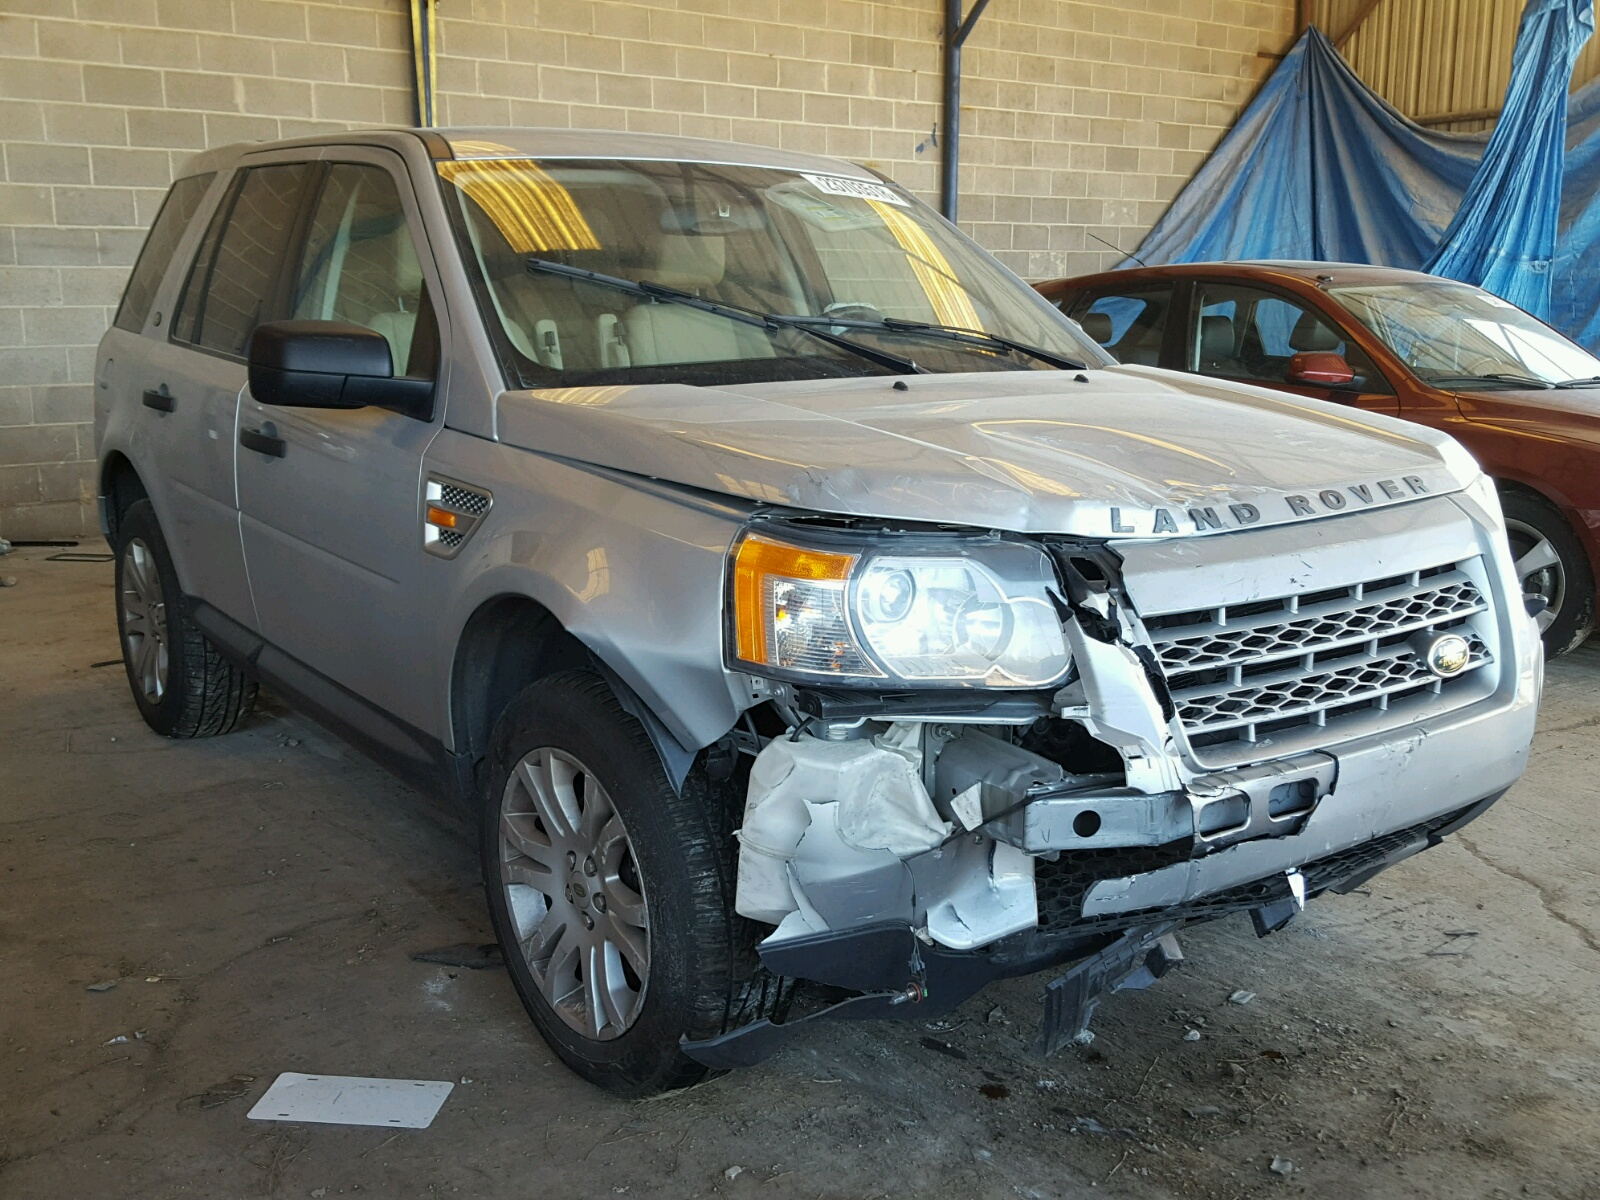 sale living urgent title for rover landrover vehicles qatar land hse